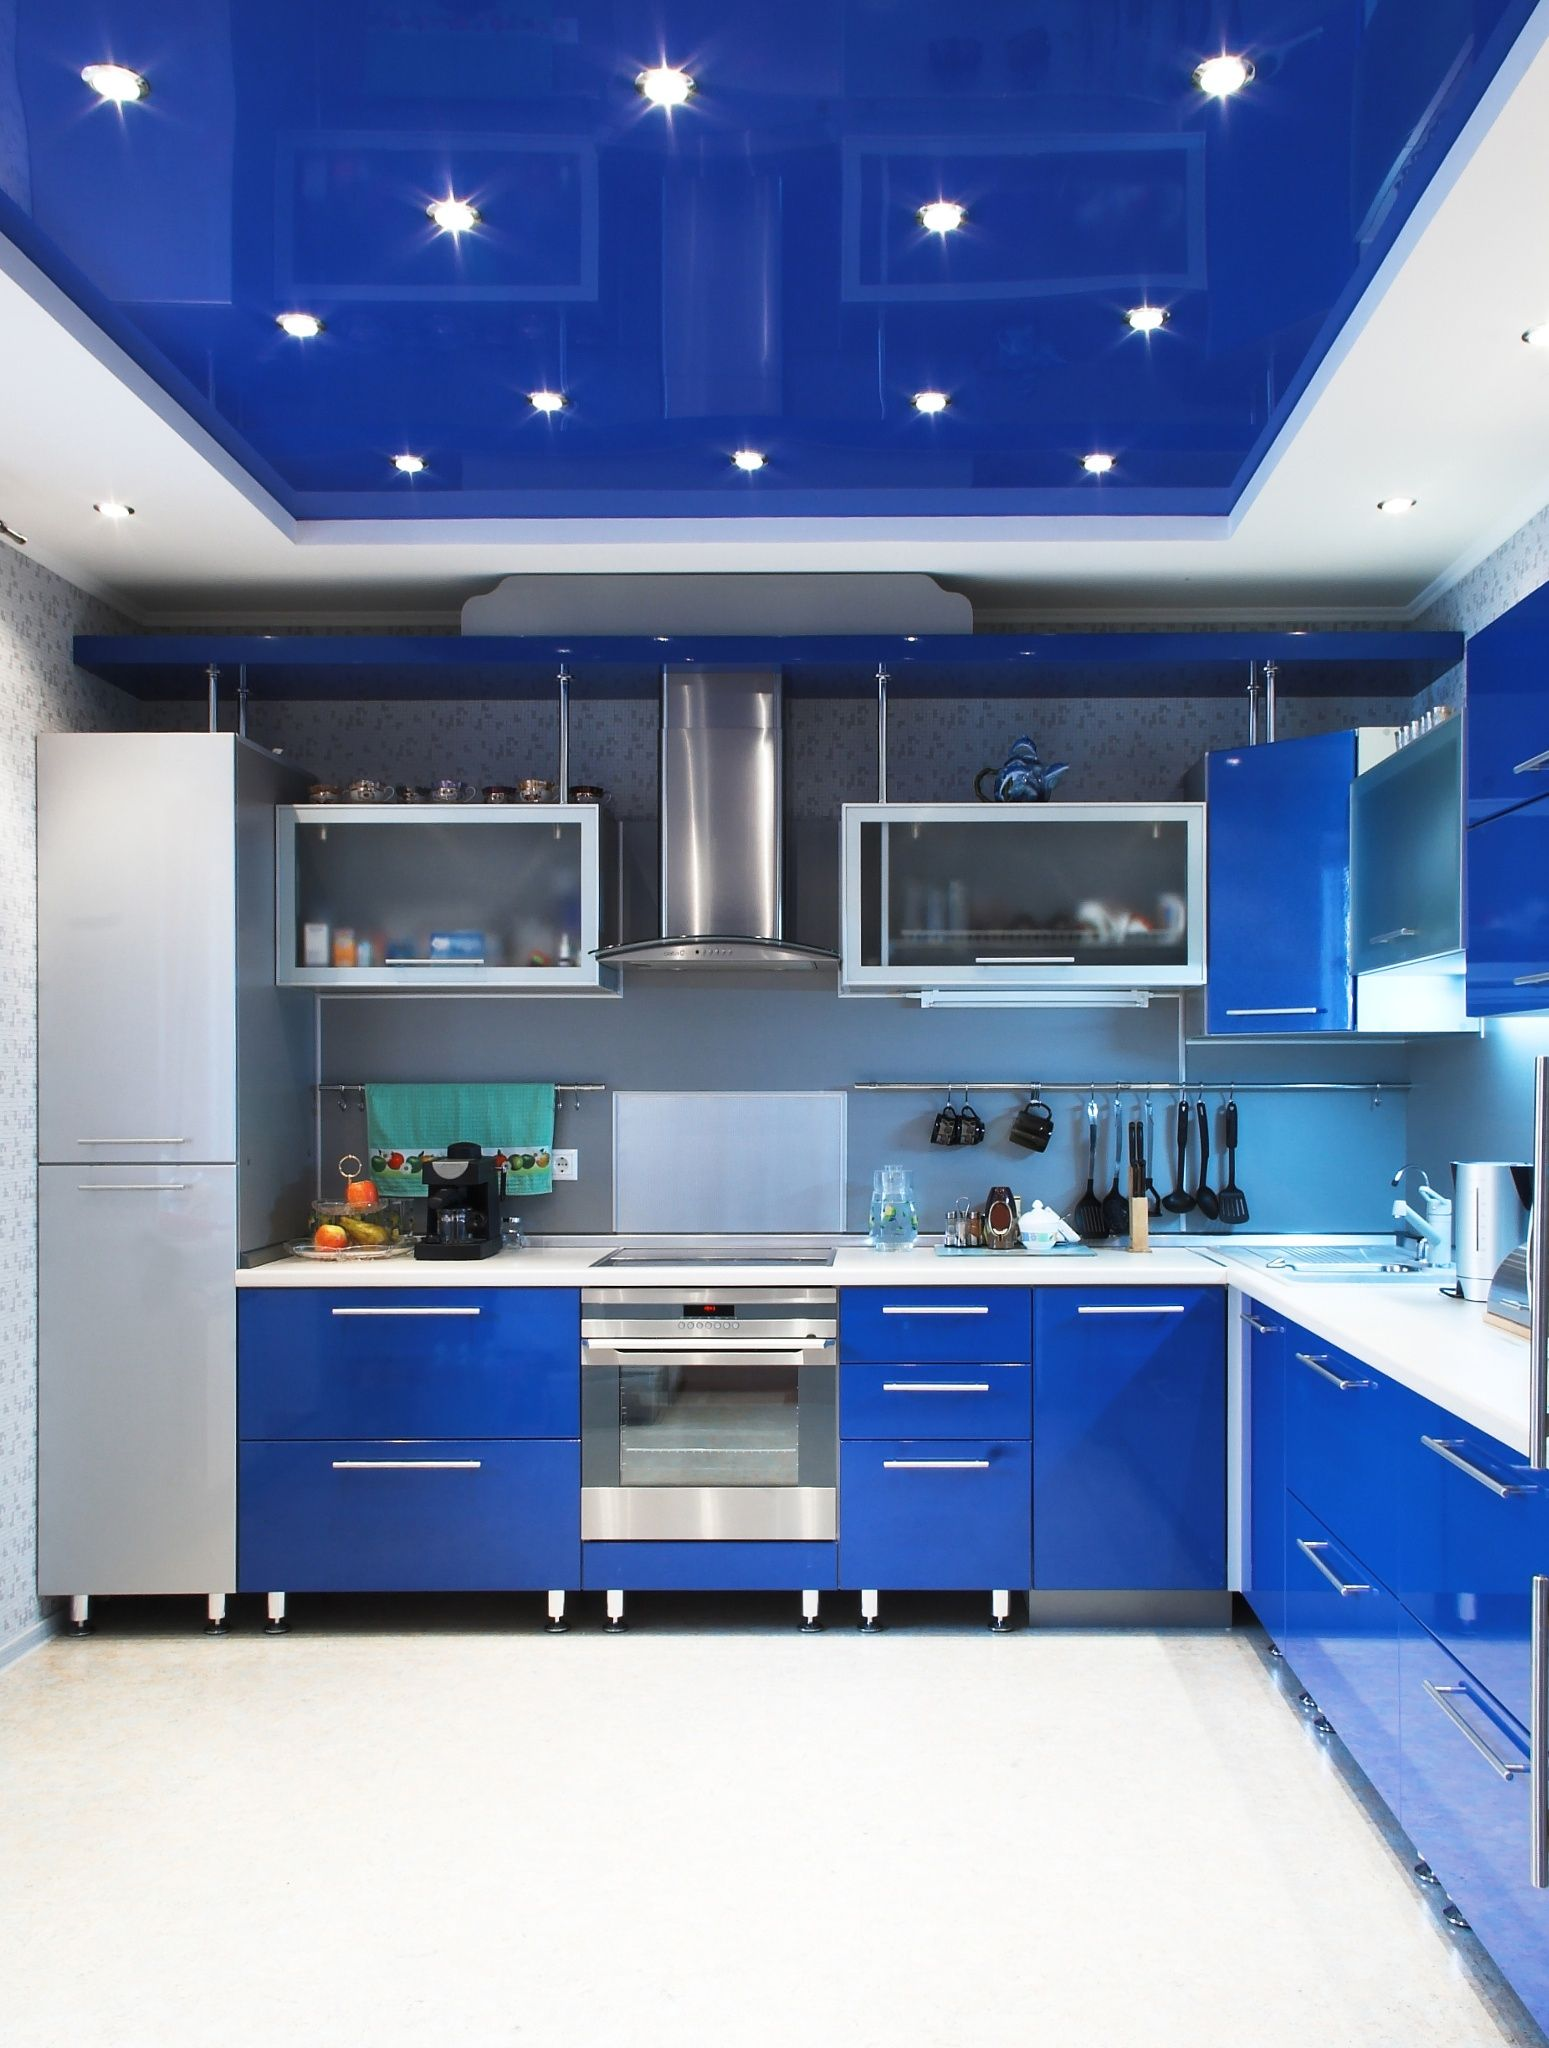 Best Blue Lacquer Stretch Ceiling In A Kitchen Blue Ceiling 400 x 300